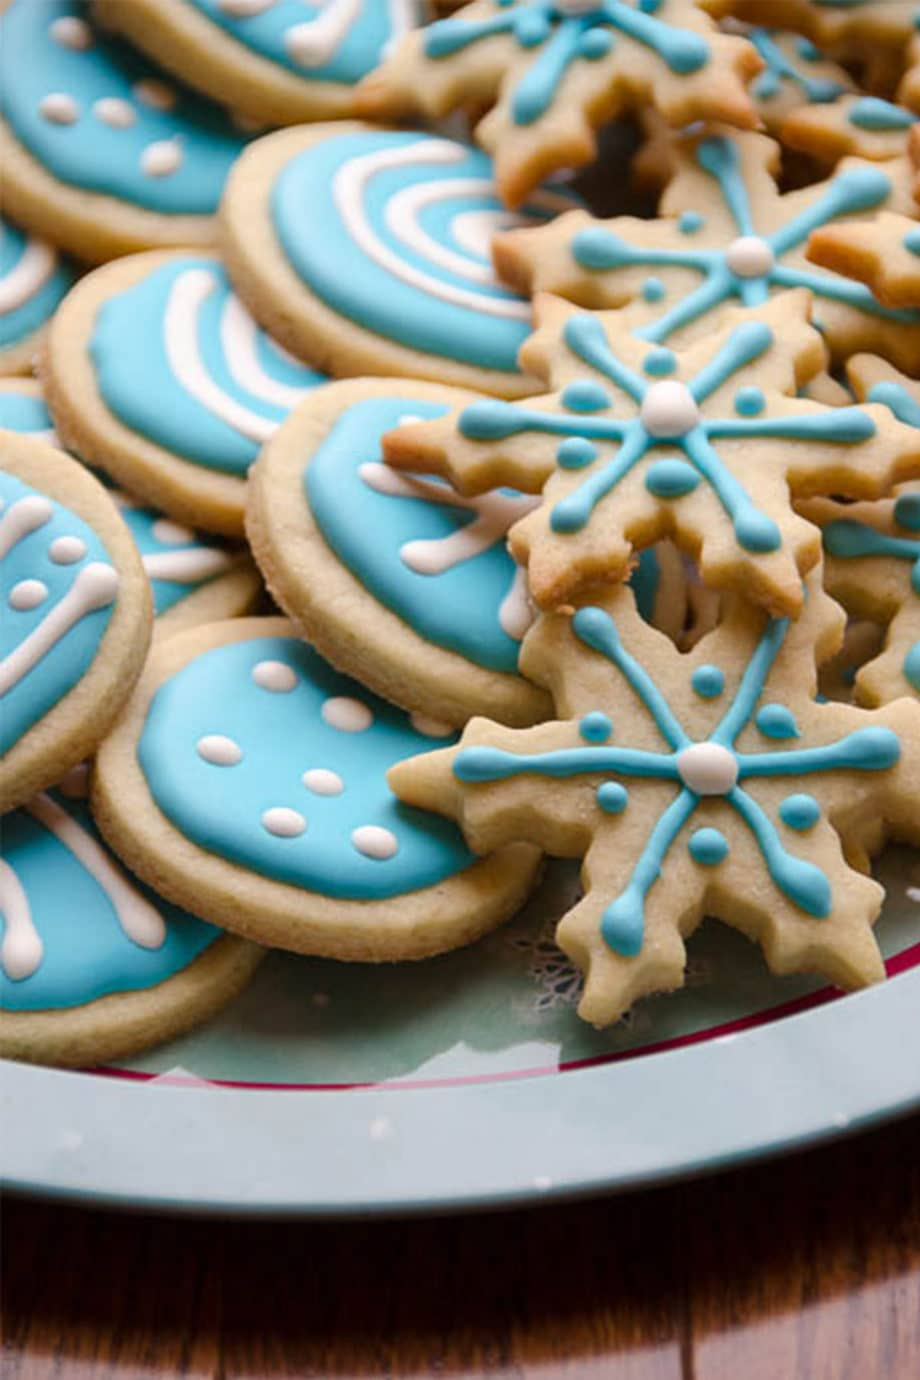 a plate of christmas cookies with blue and white icing